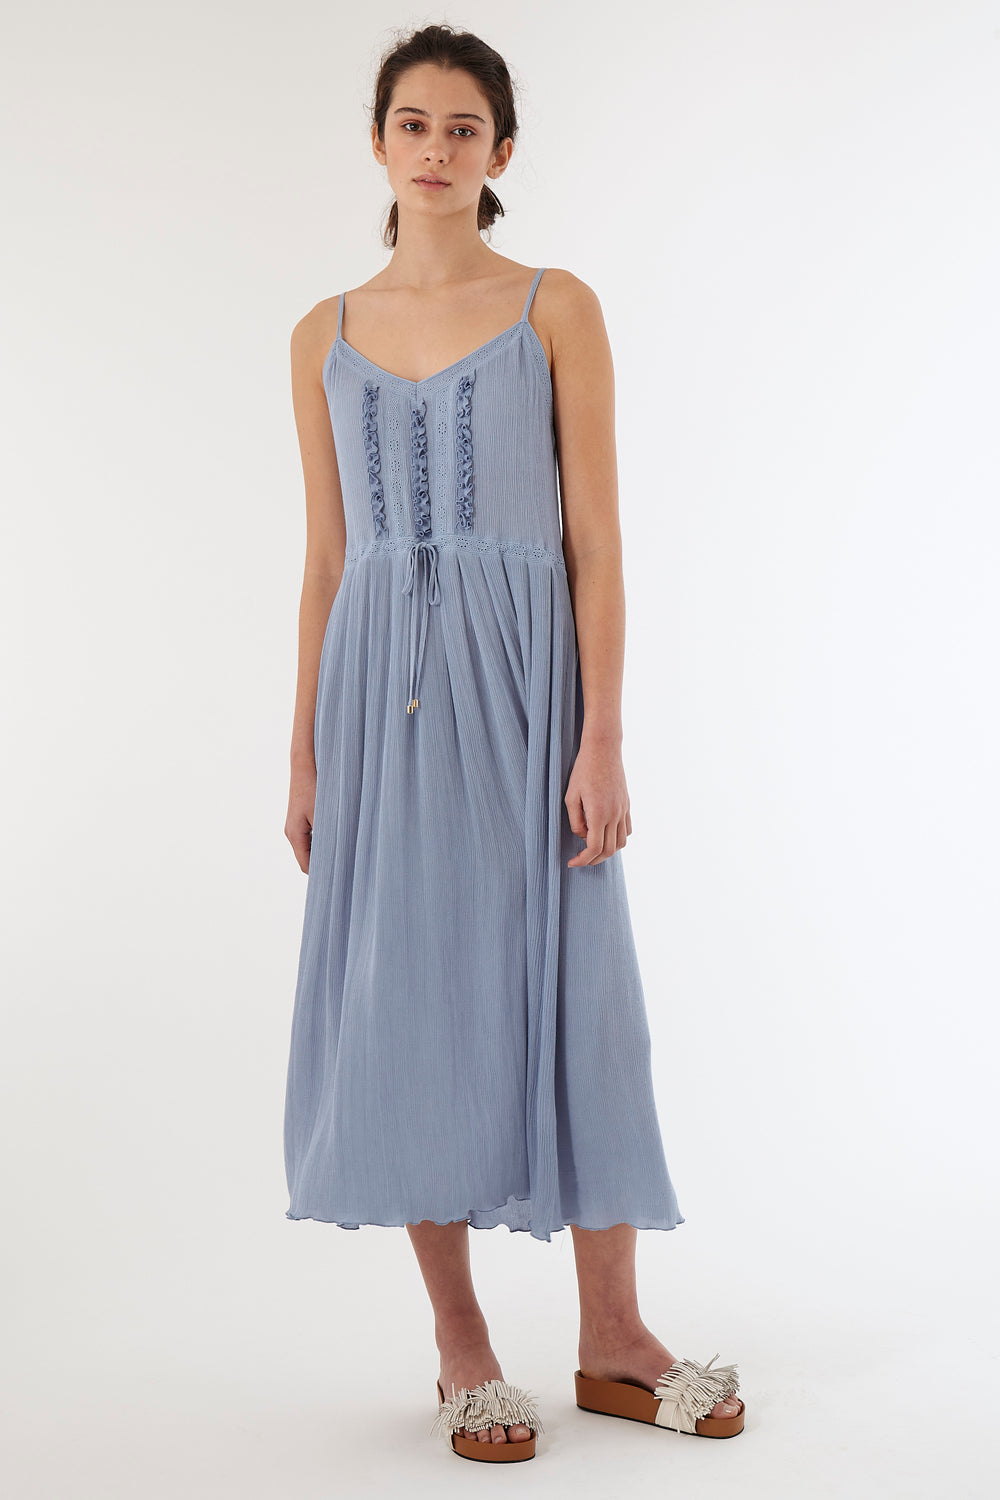 Sea breeze sundress